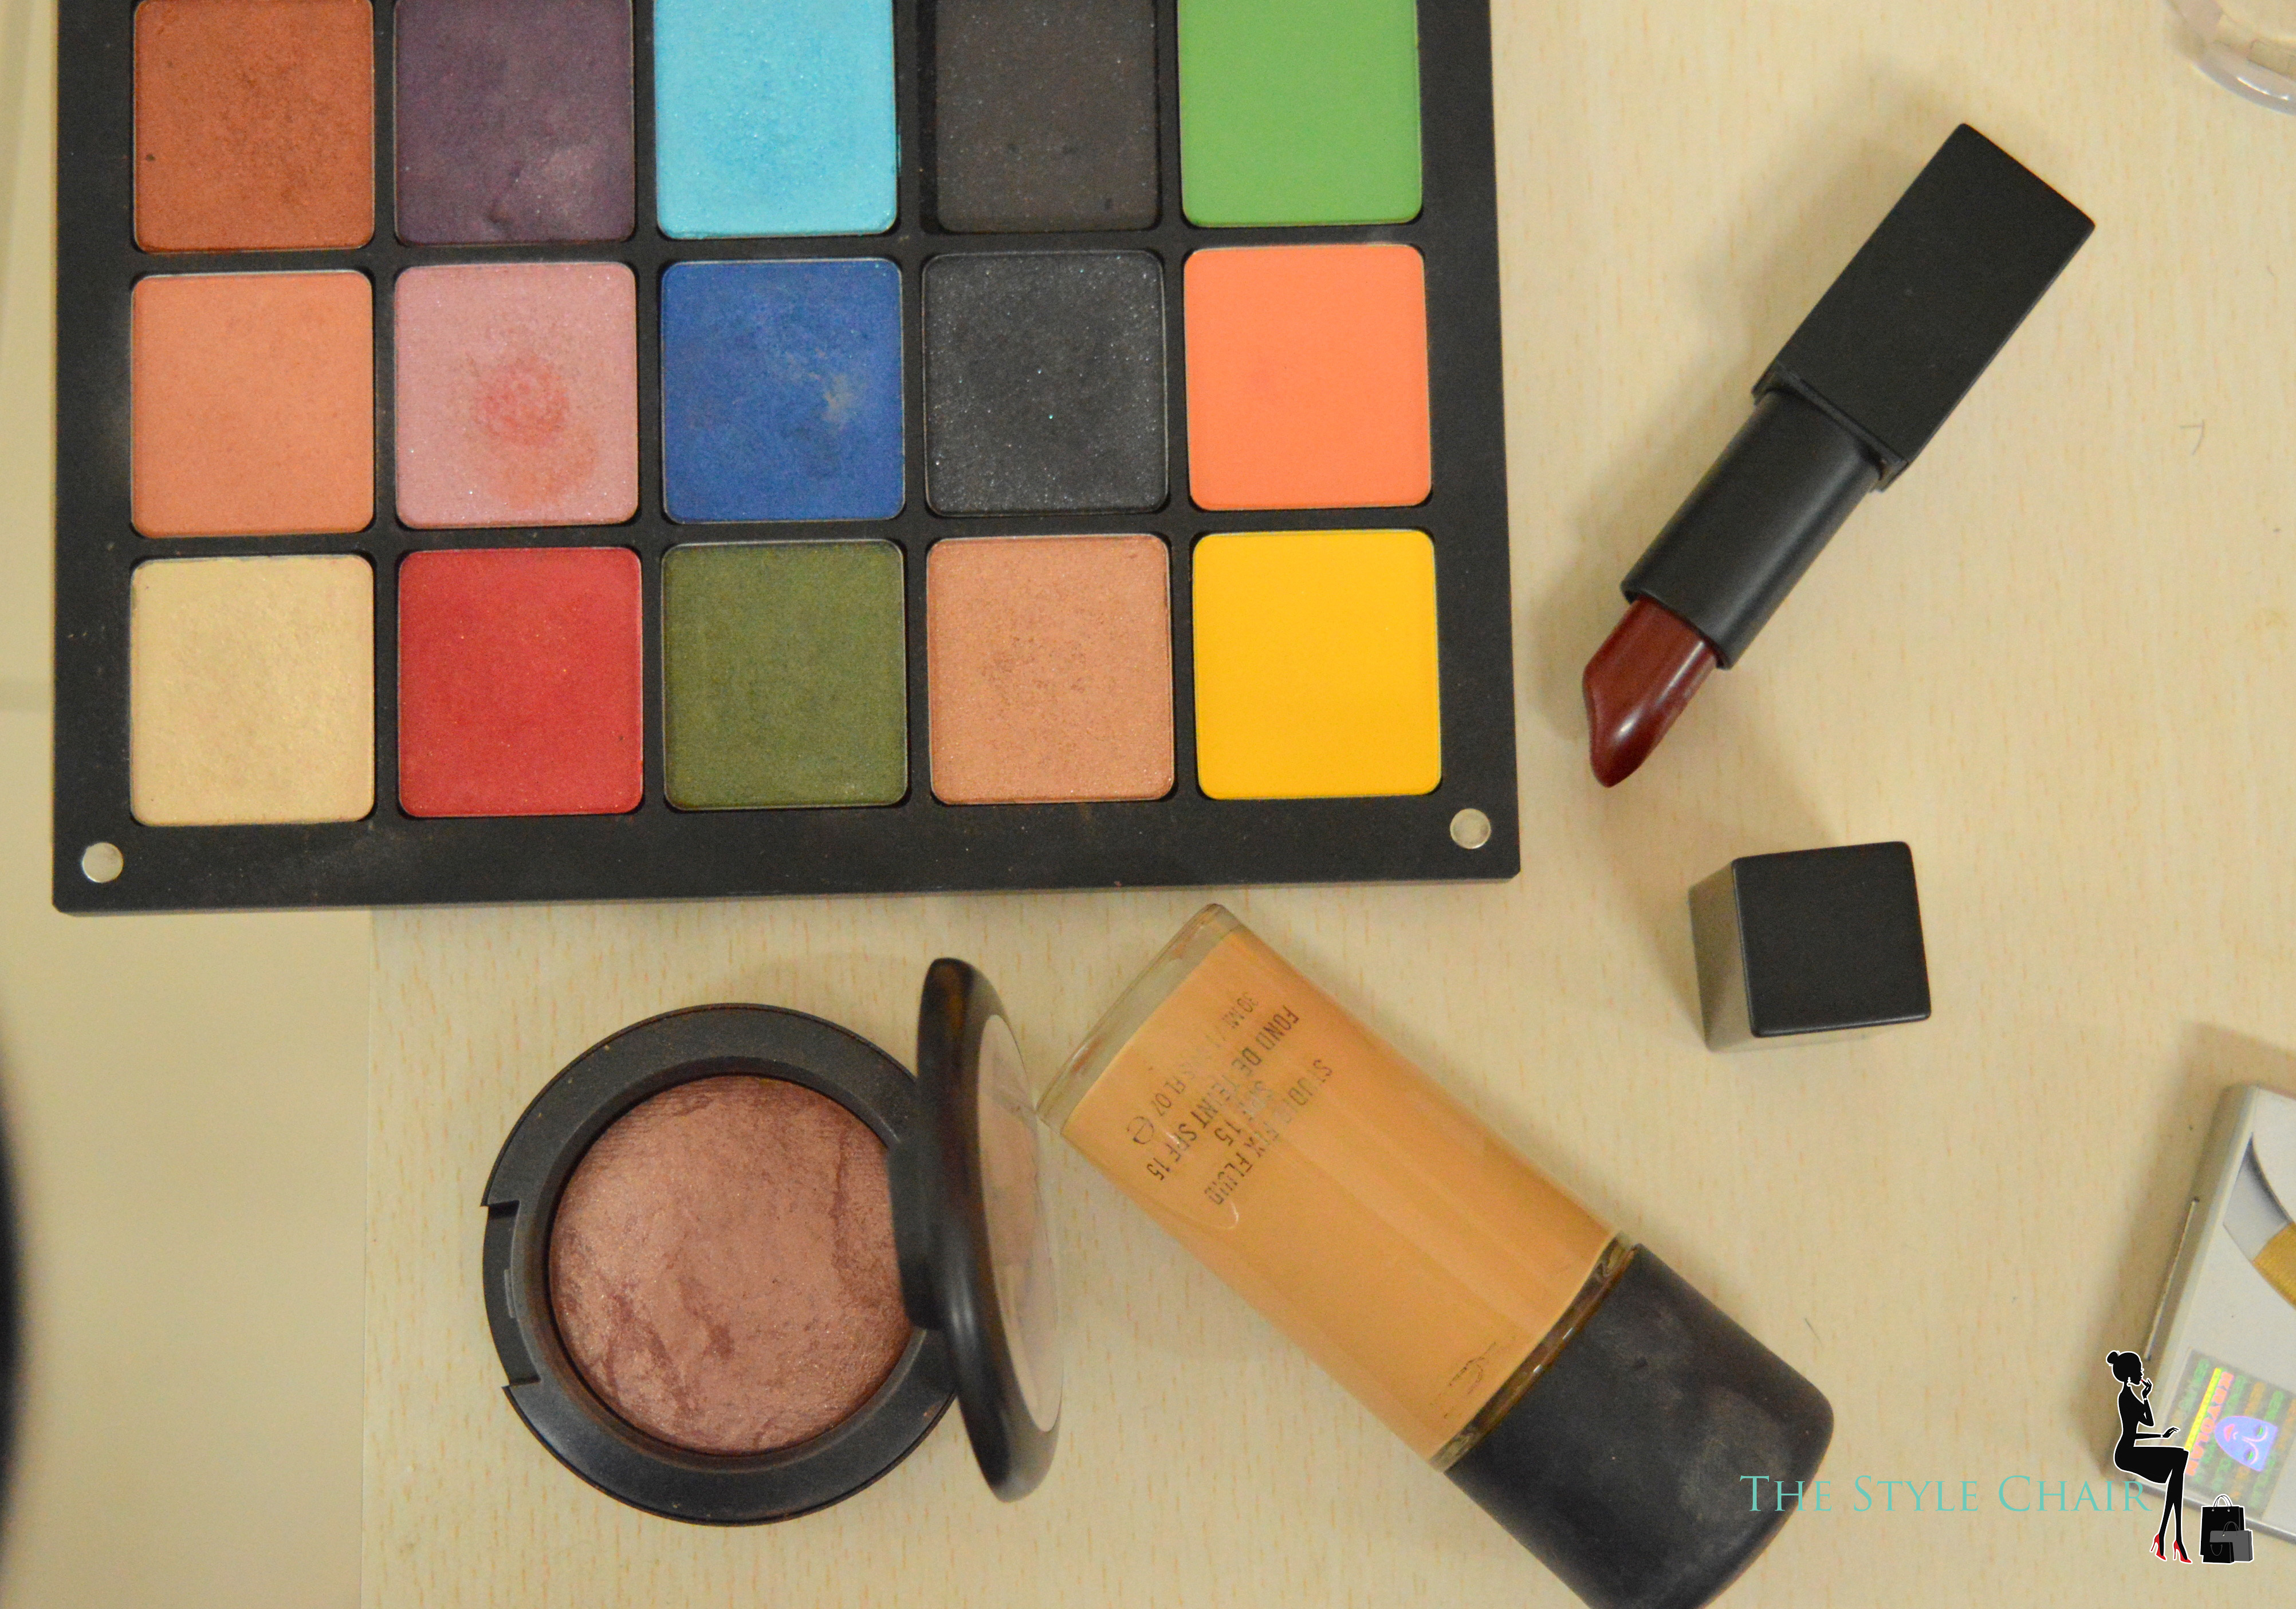 L to R- Inglot customised Eyeshadow palette, NARS Charolette Lipstick, MAC Studio Fix